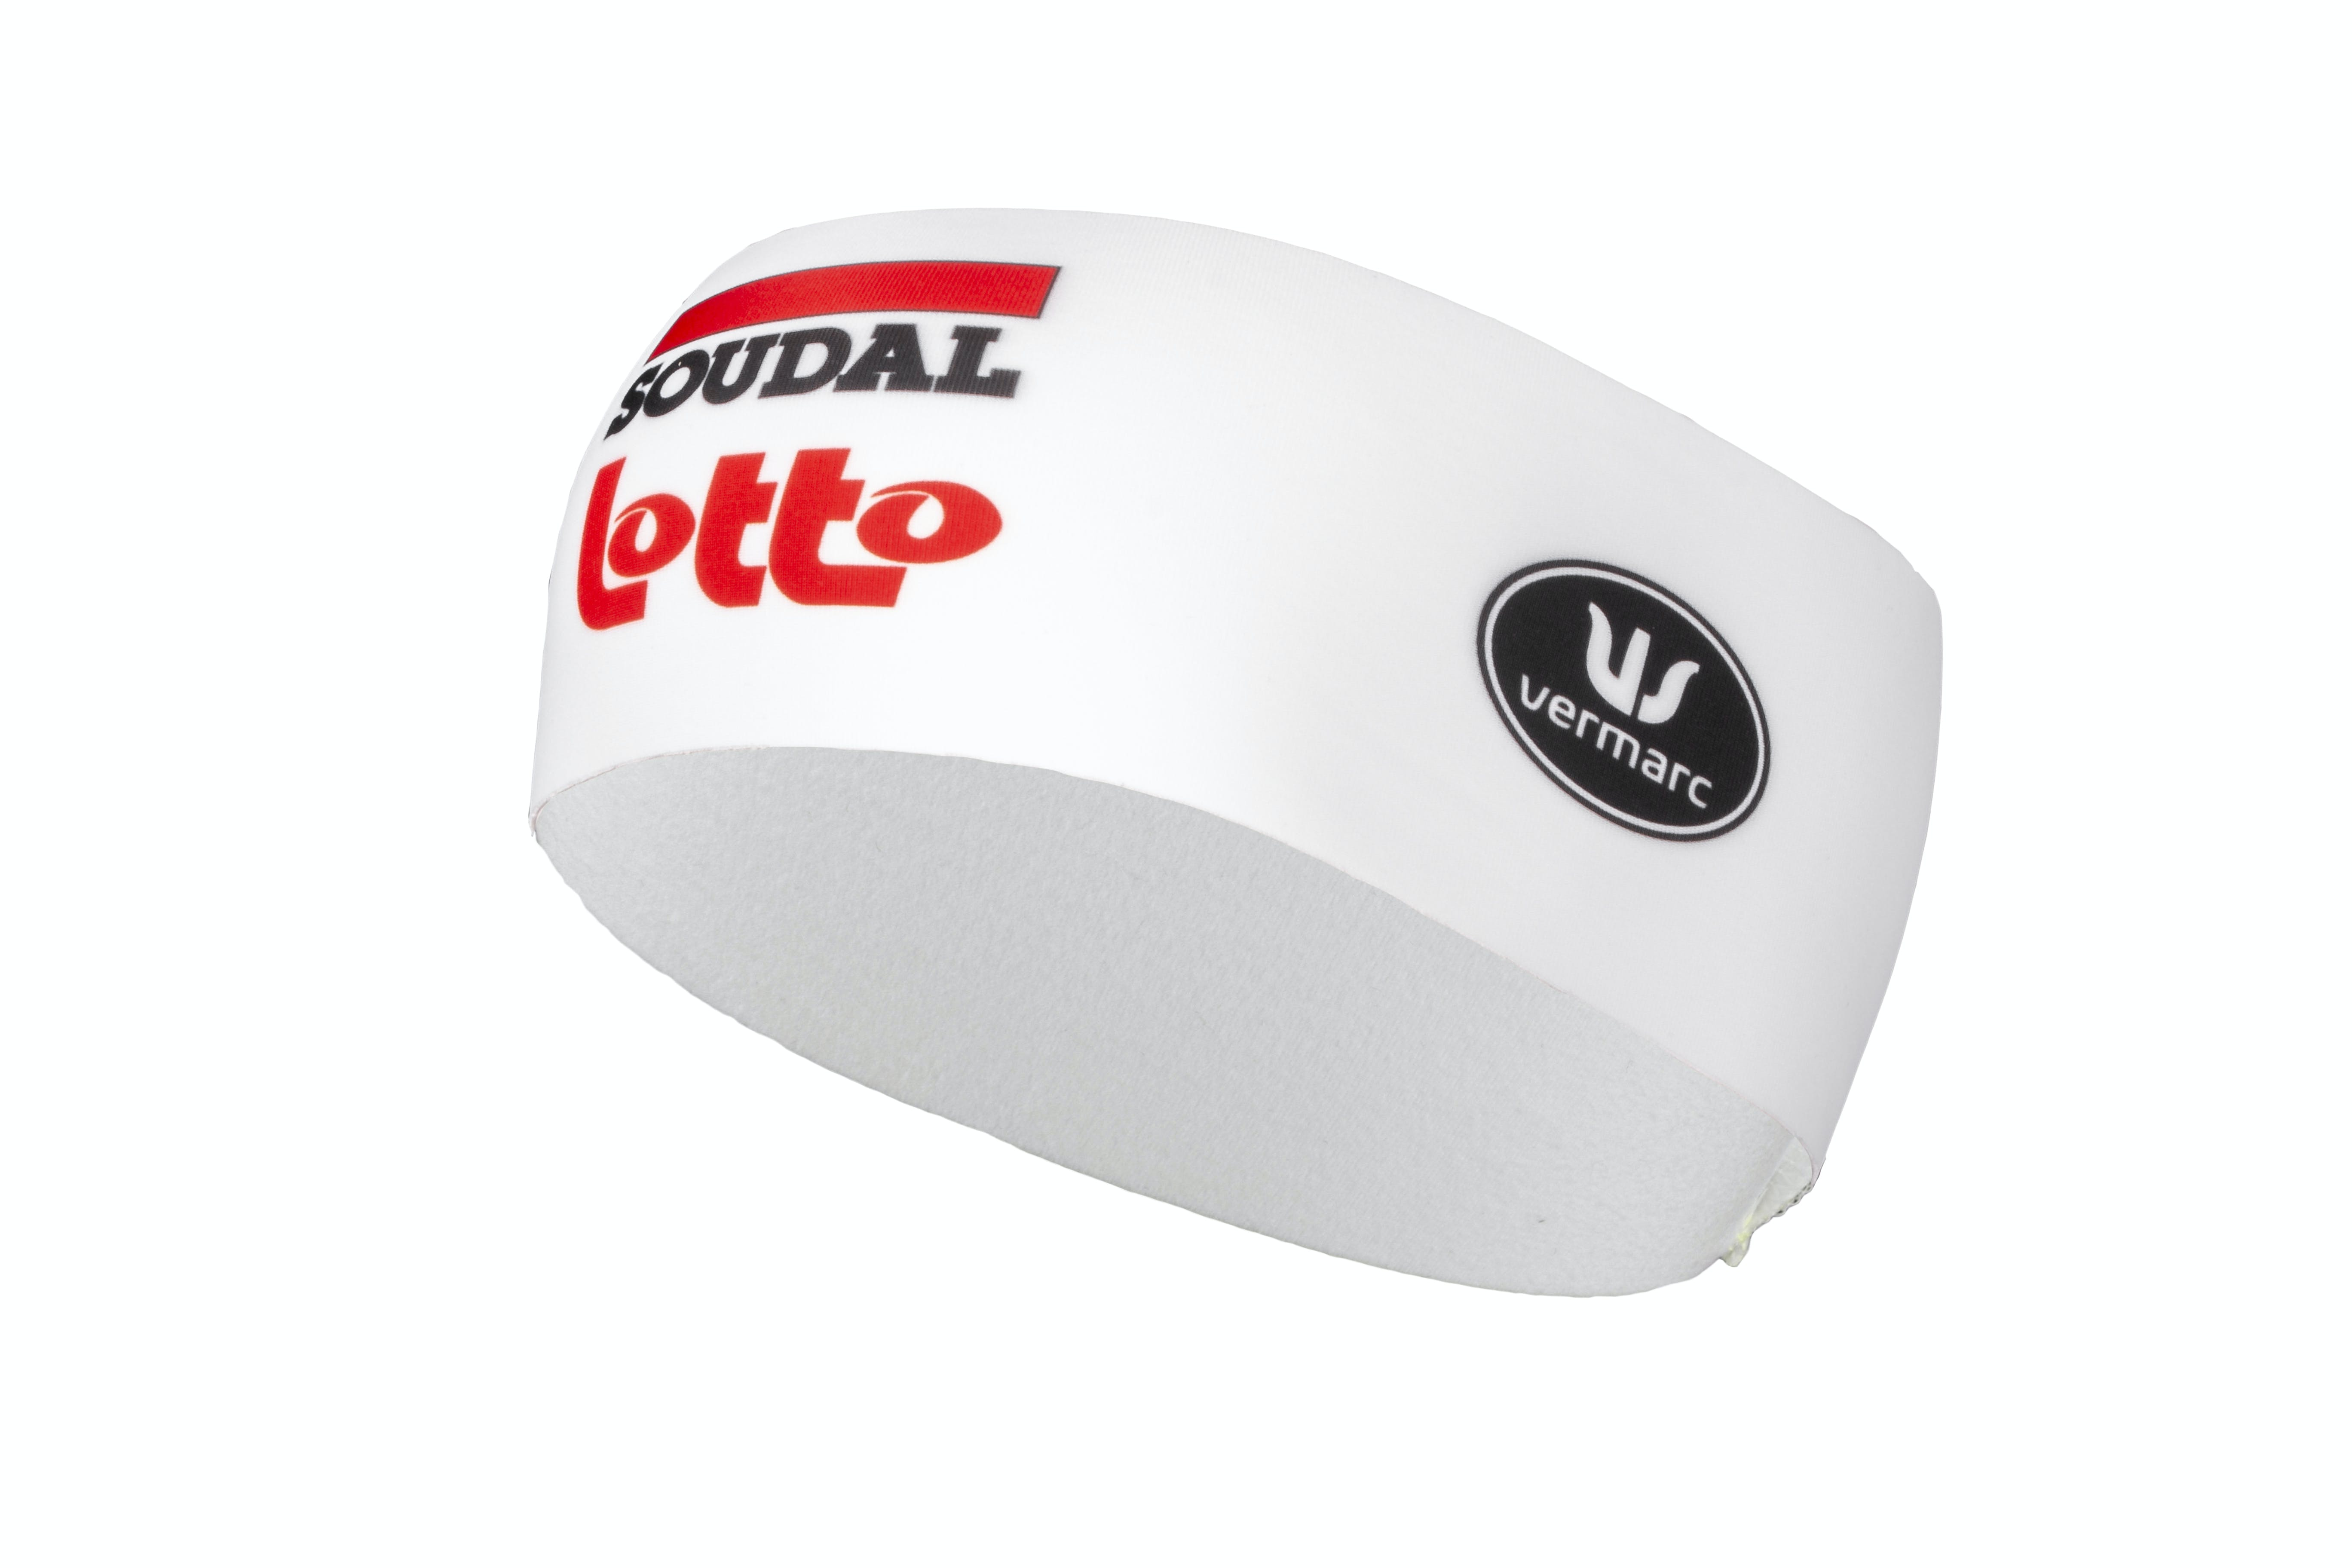 Soudal Lotto 2021 Hair Ribbon